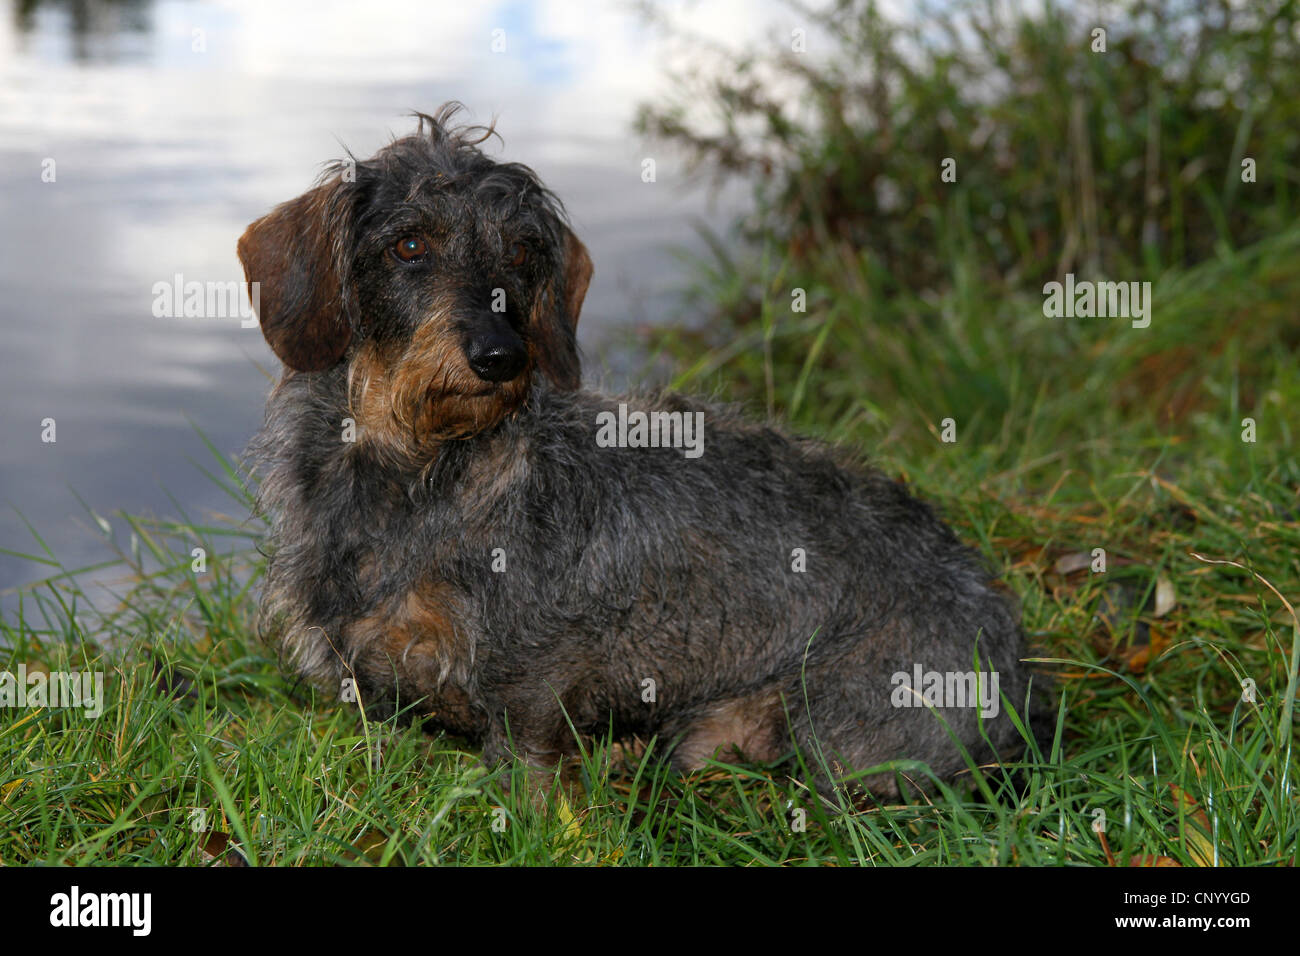 G Haired Stock Photos & G Haired Stock Images - Alamy